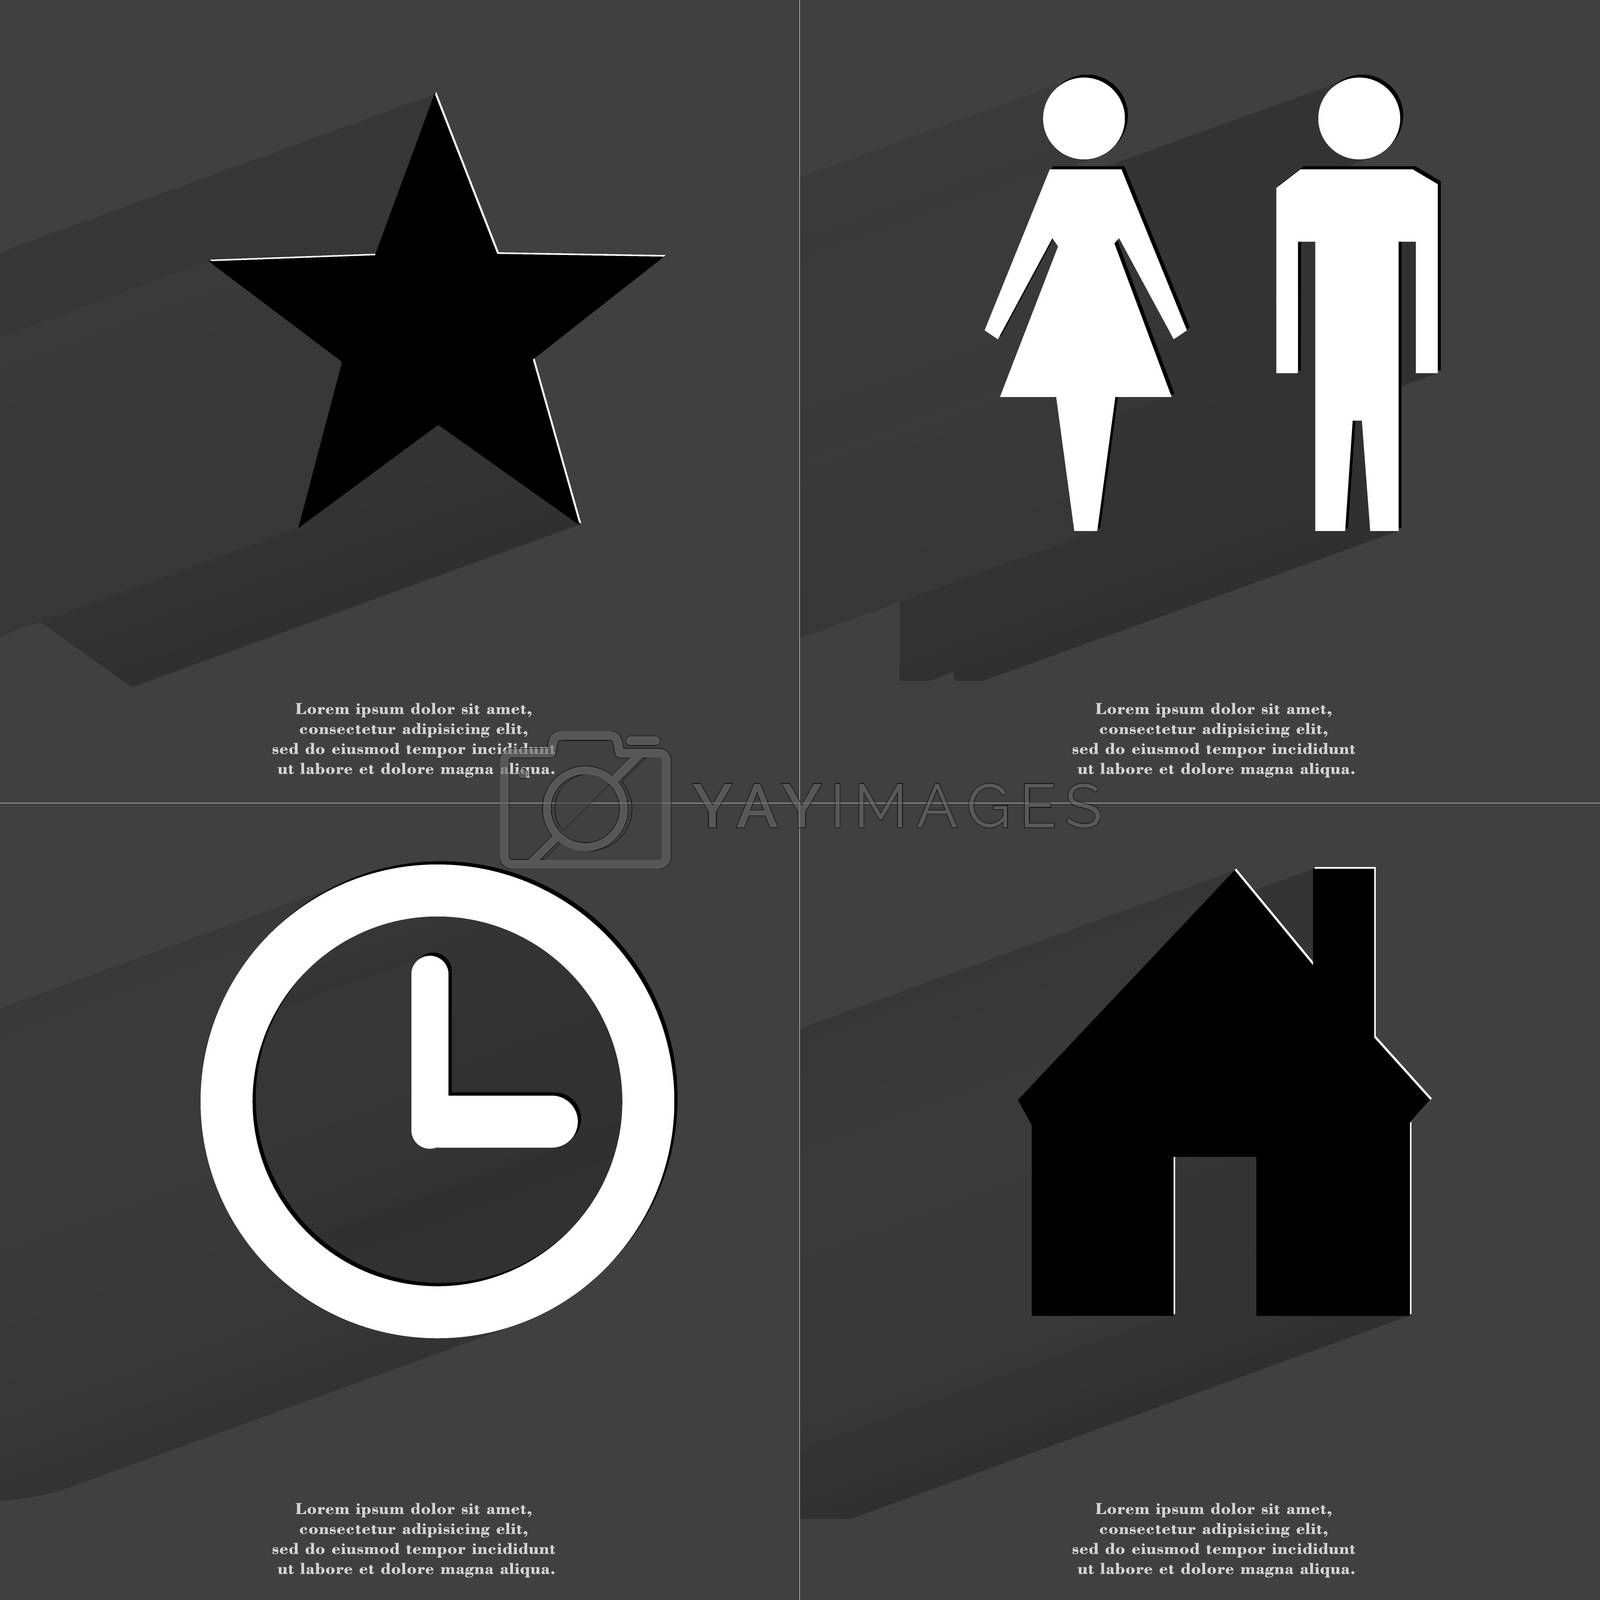 Royalty free image of Star, Silhouette of man and woman, Clock, House. Symbols with long shadow. Flat design by serhii_lohvyniuk